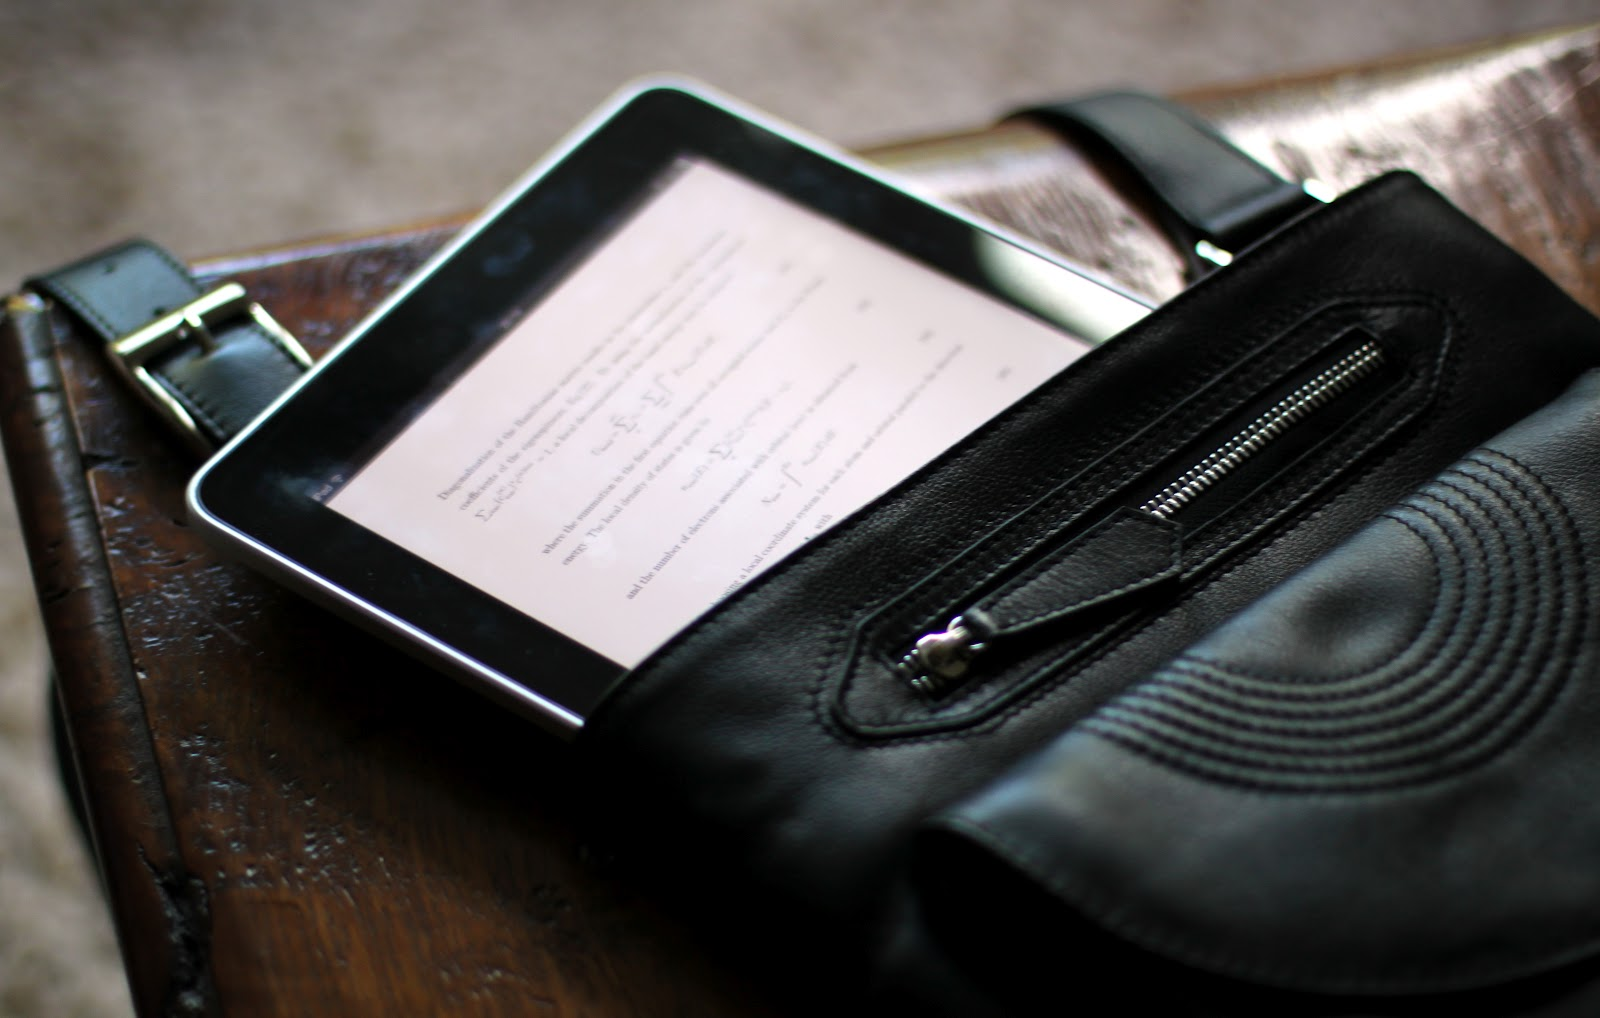 iPad inside men's Bracher Emden bag